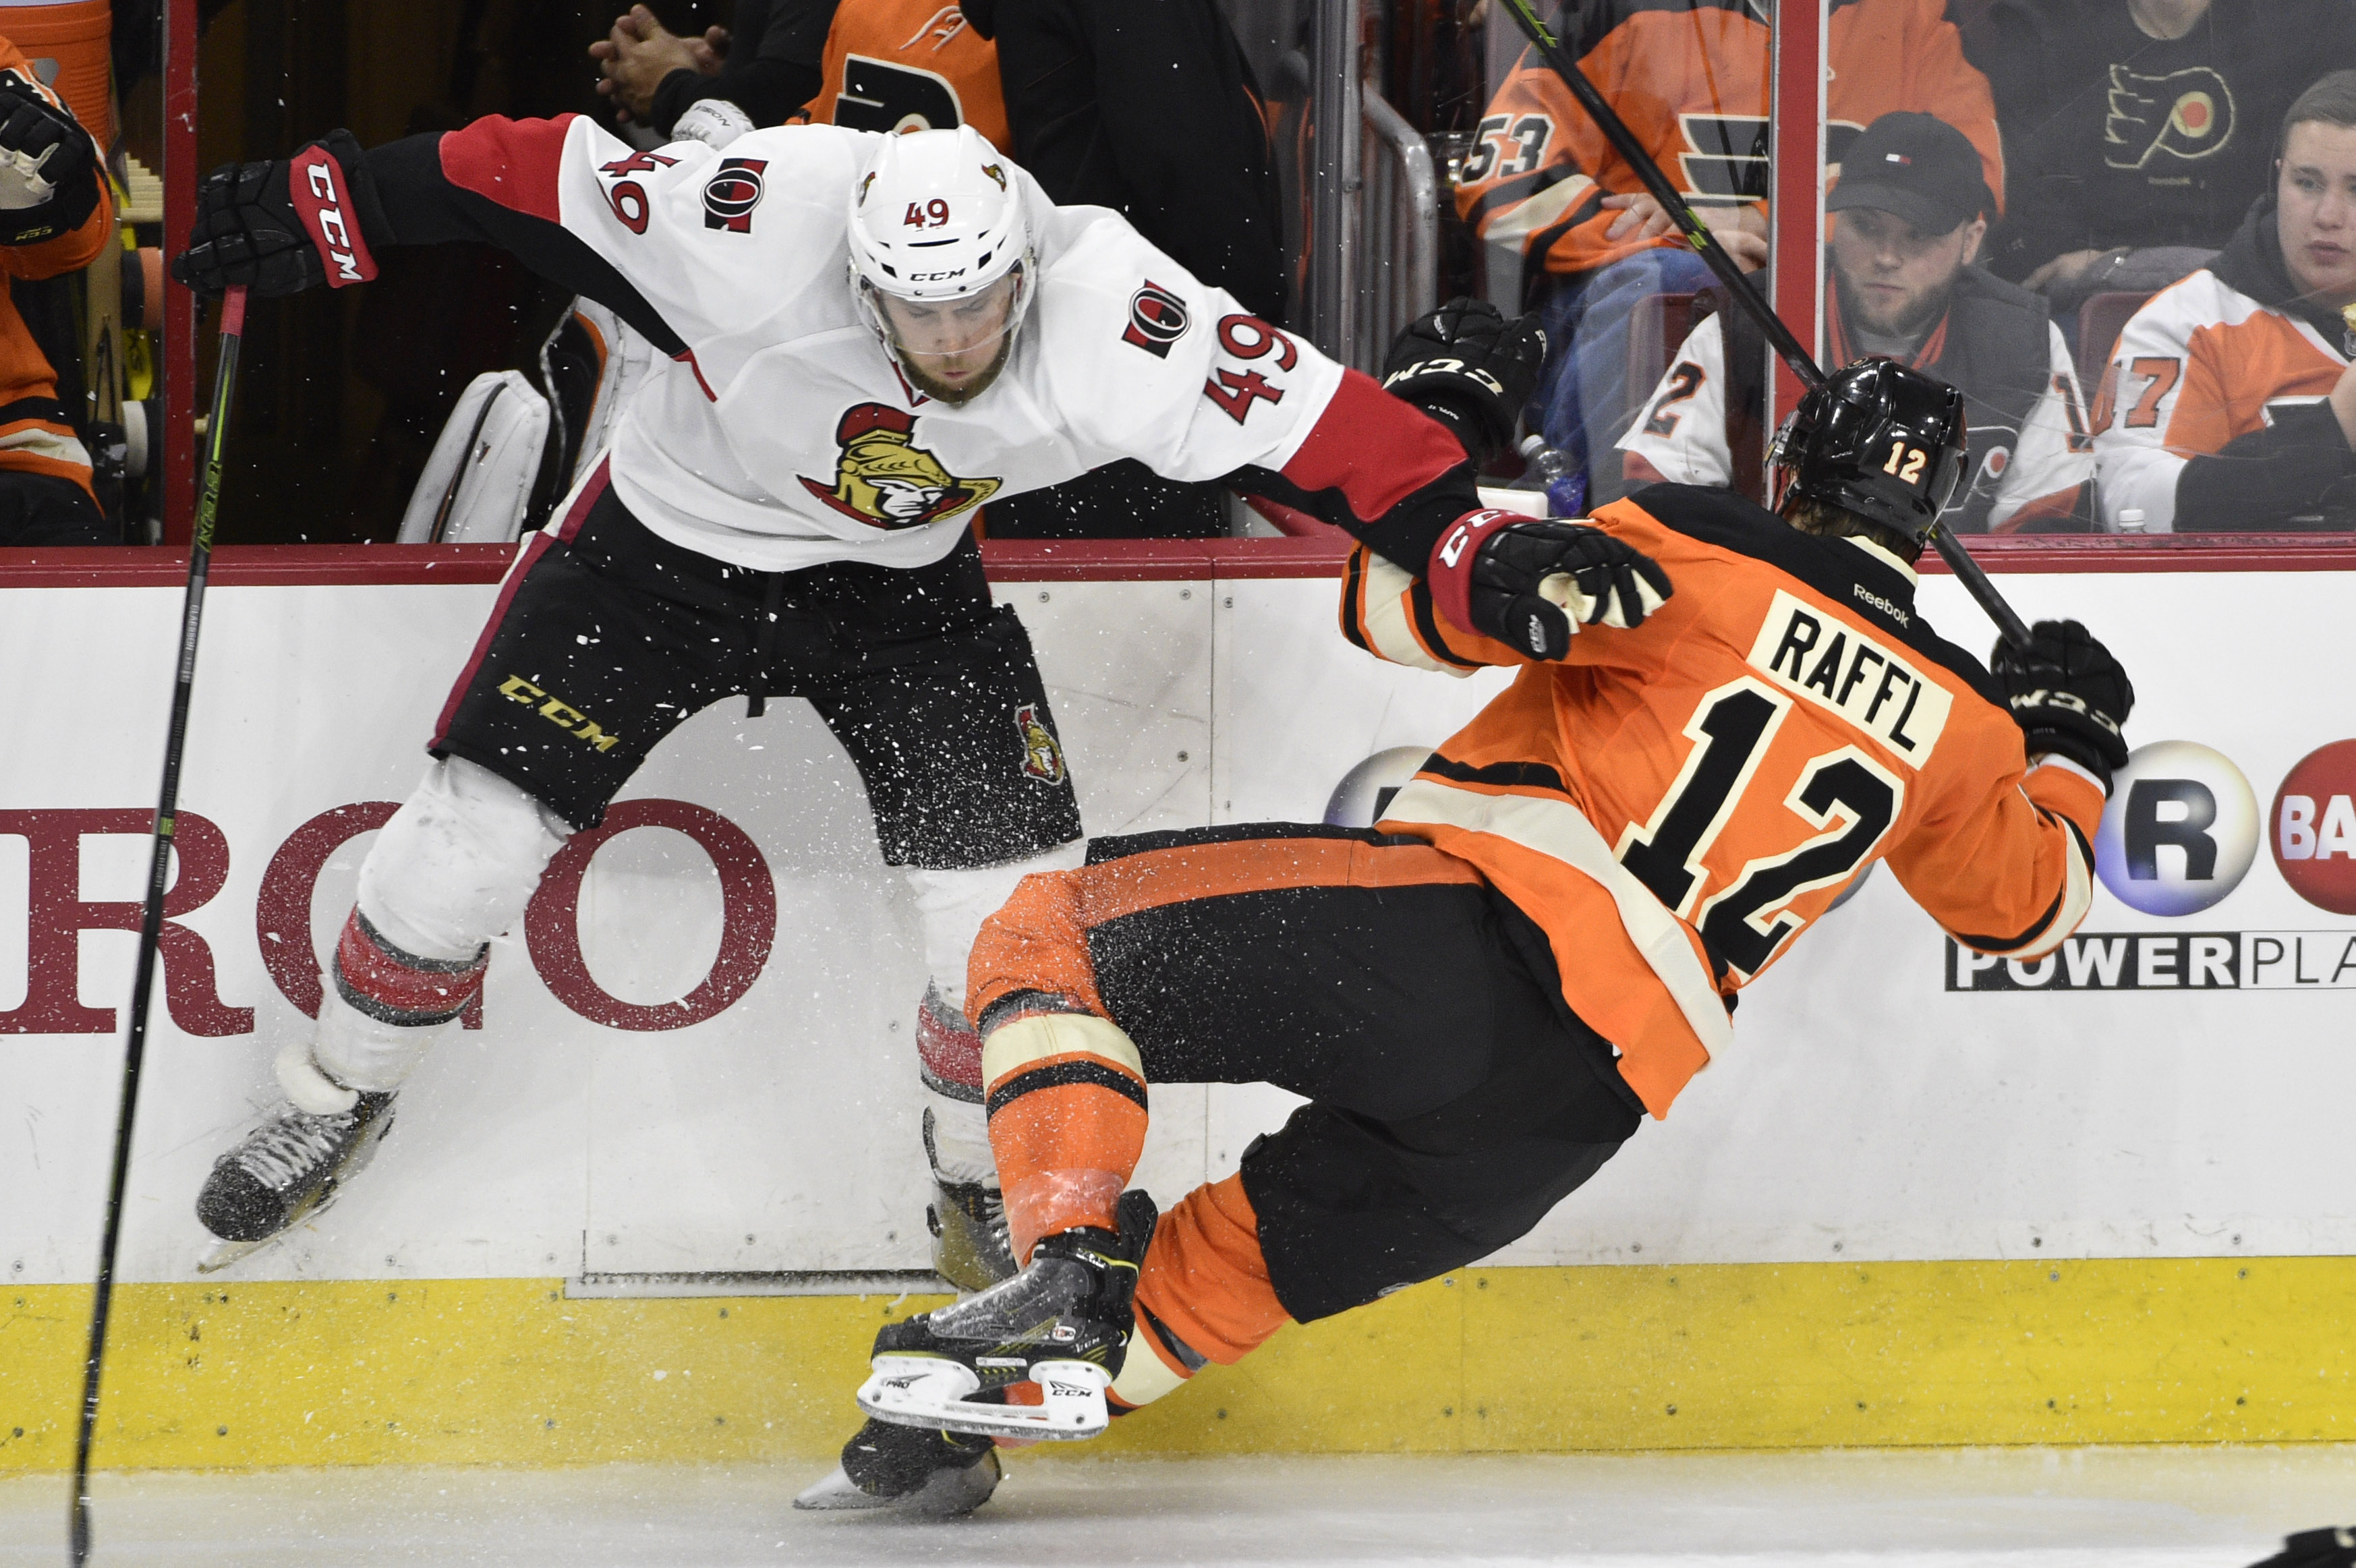 Claesson's up and Raffl's down in this photo